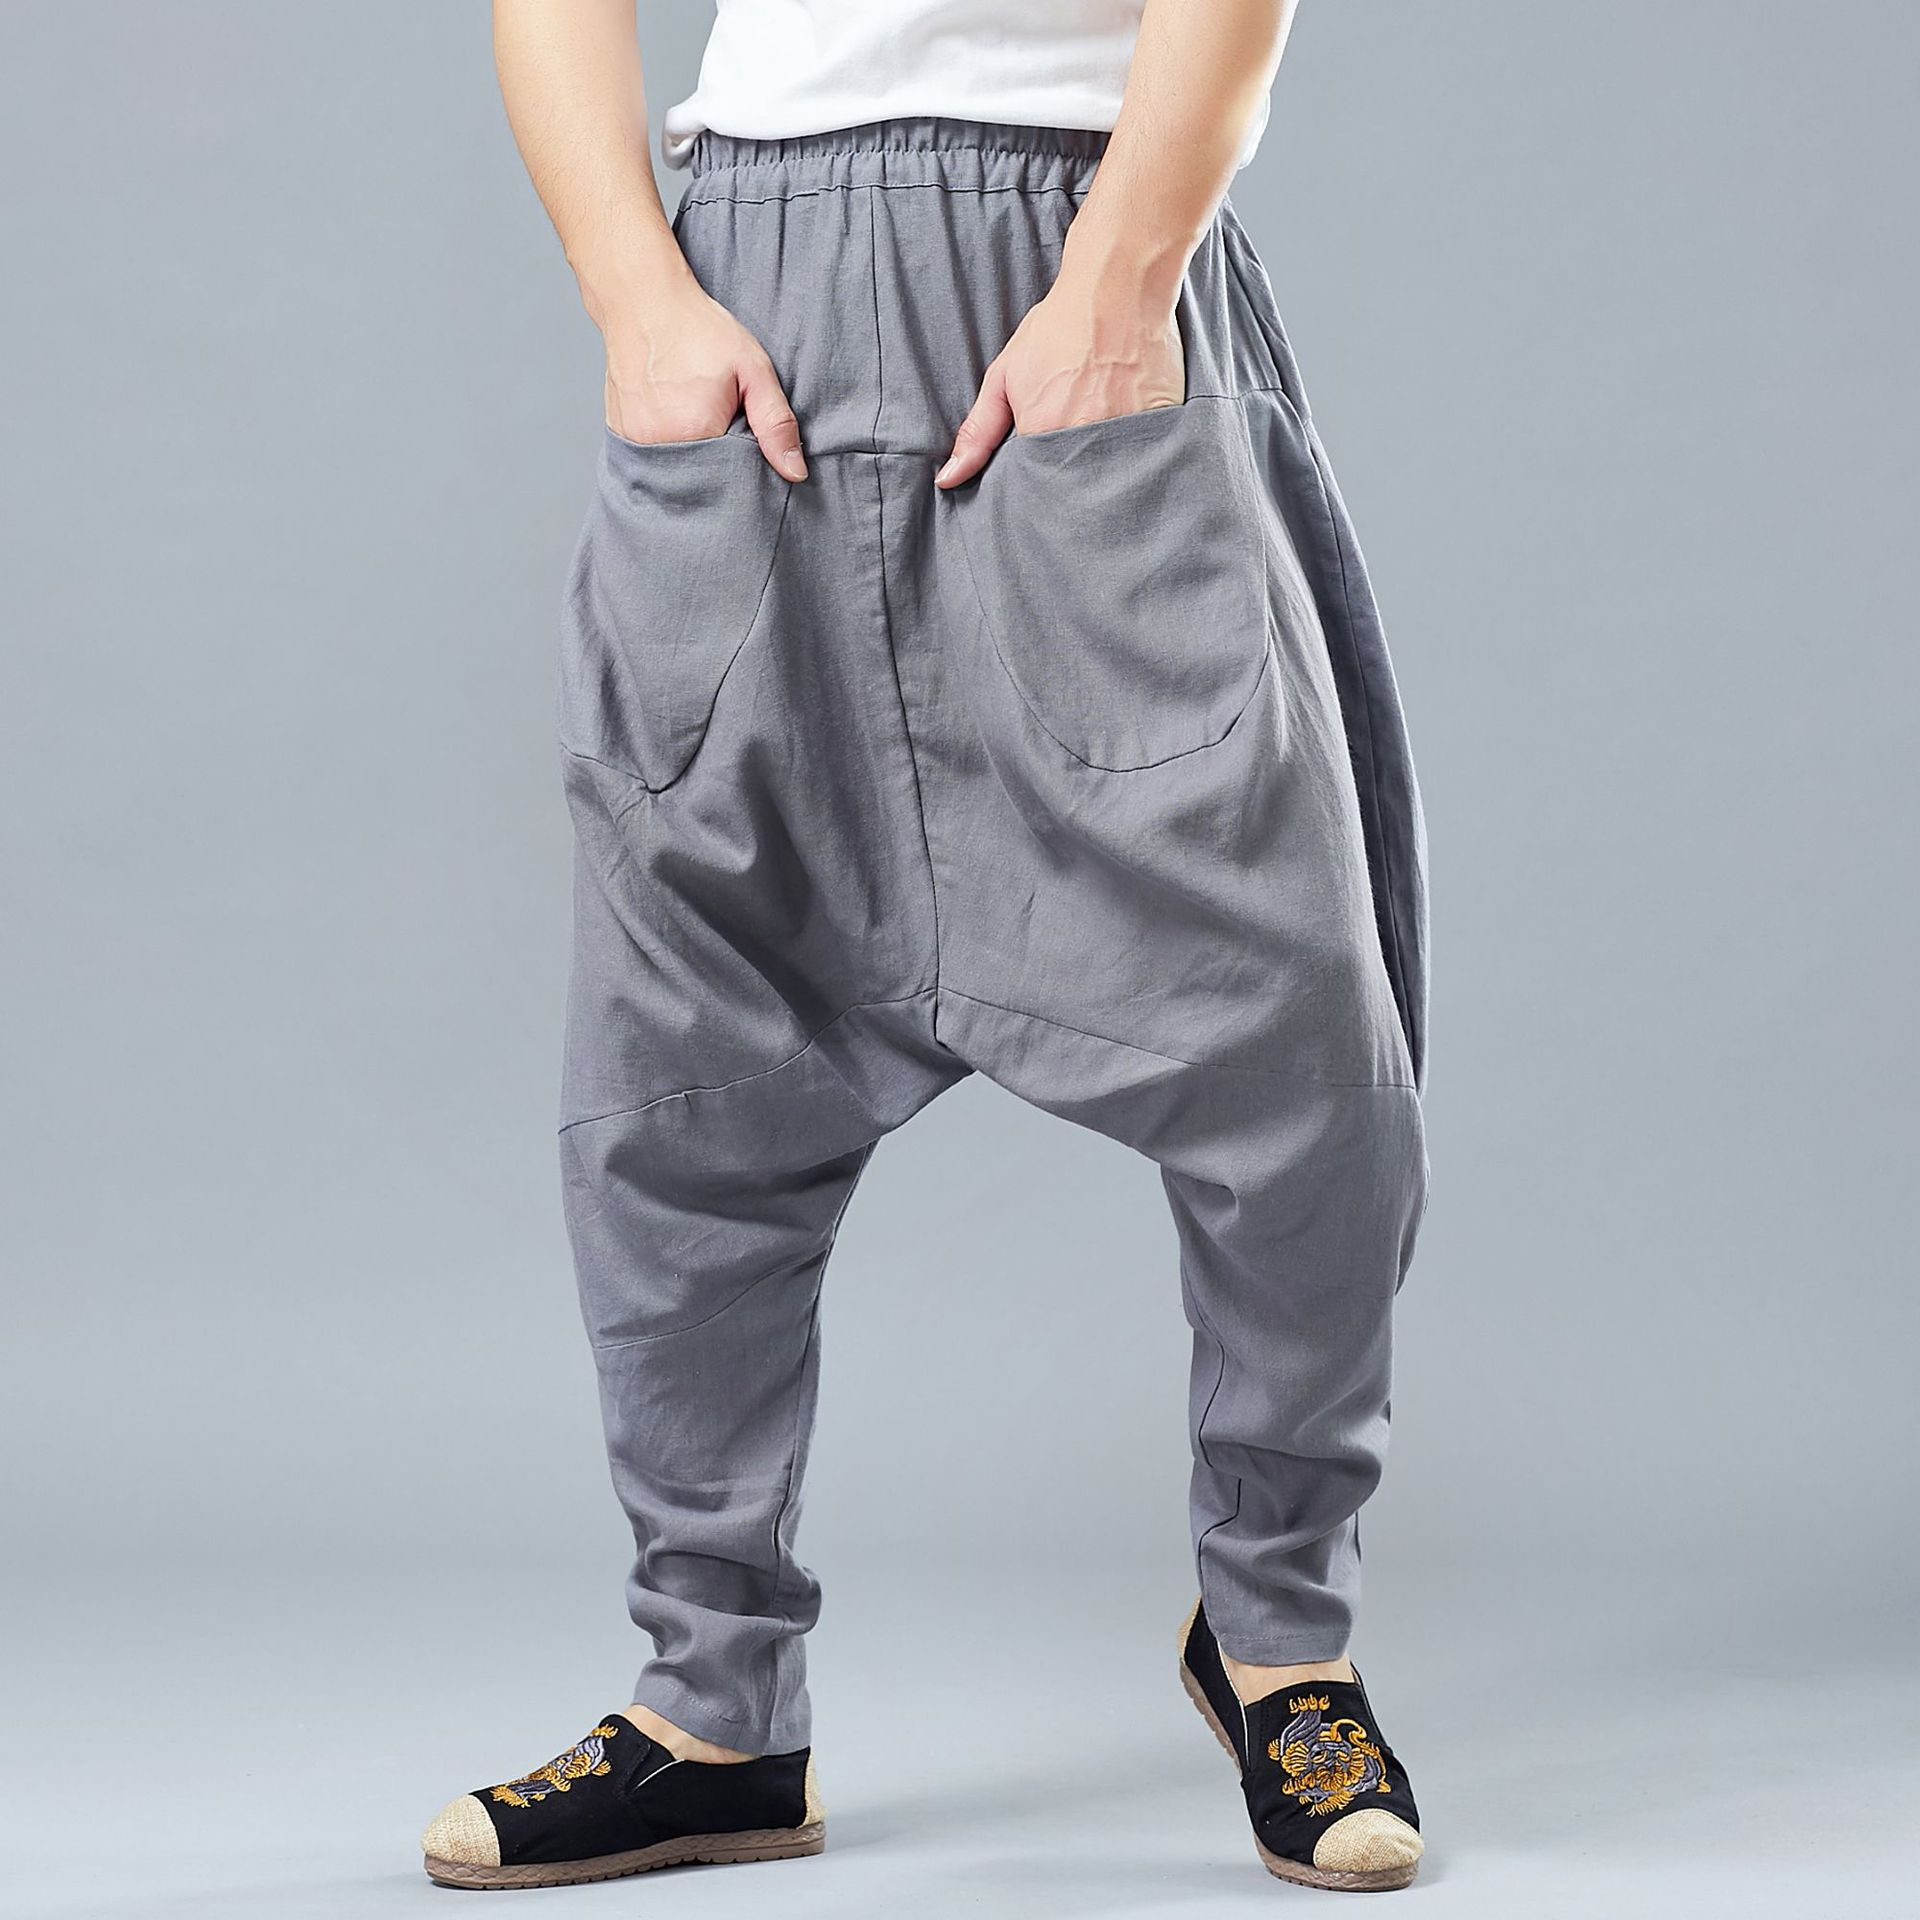 Spring Men Casual Baggy Sweatpant Linen Harem Loose Wide Leg Crotch Pant Bloomers Casual Jogger Running Workout Track Yoga Pant in Yoga Pants from Sports Entertainment